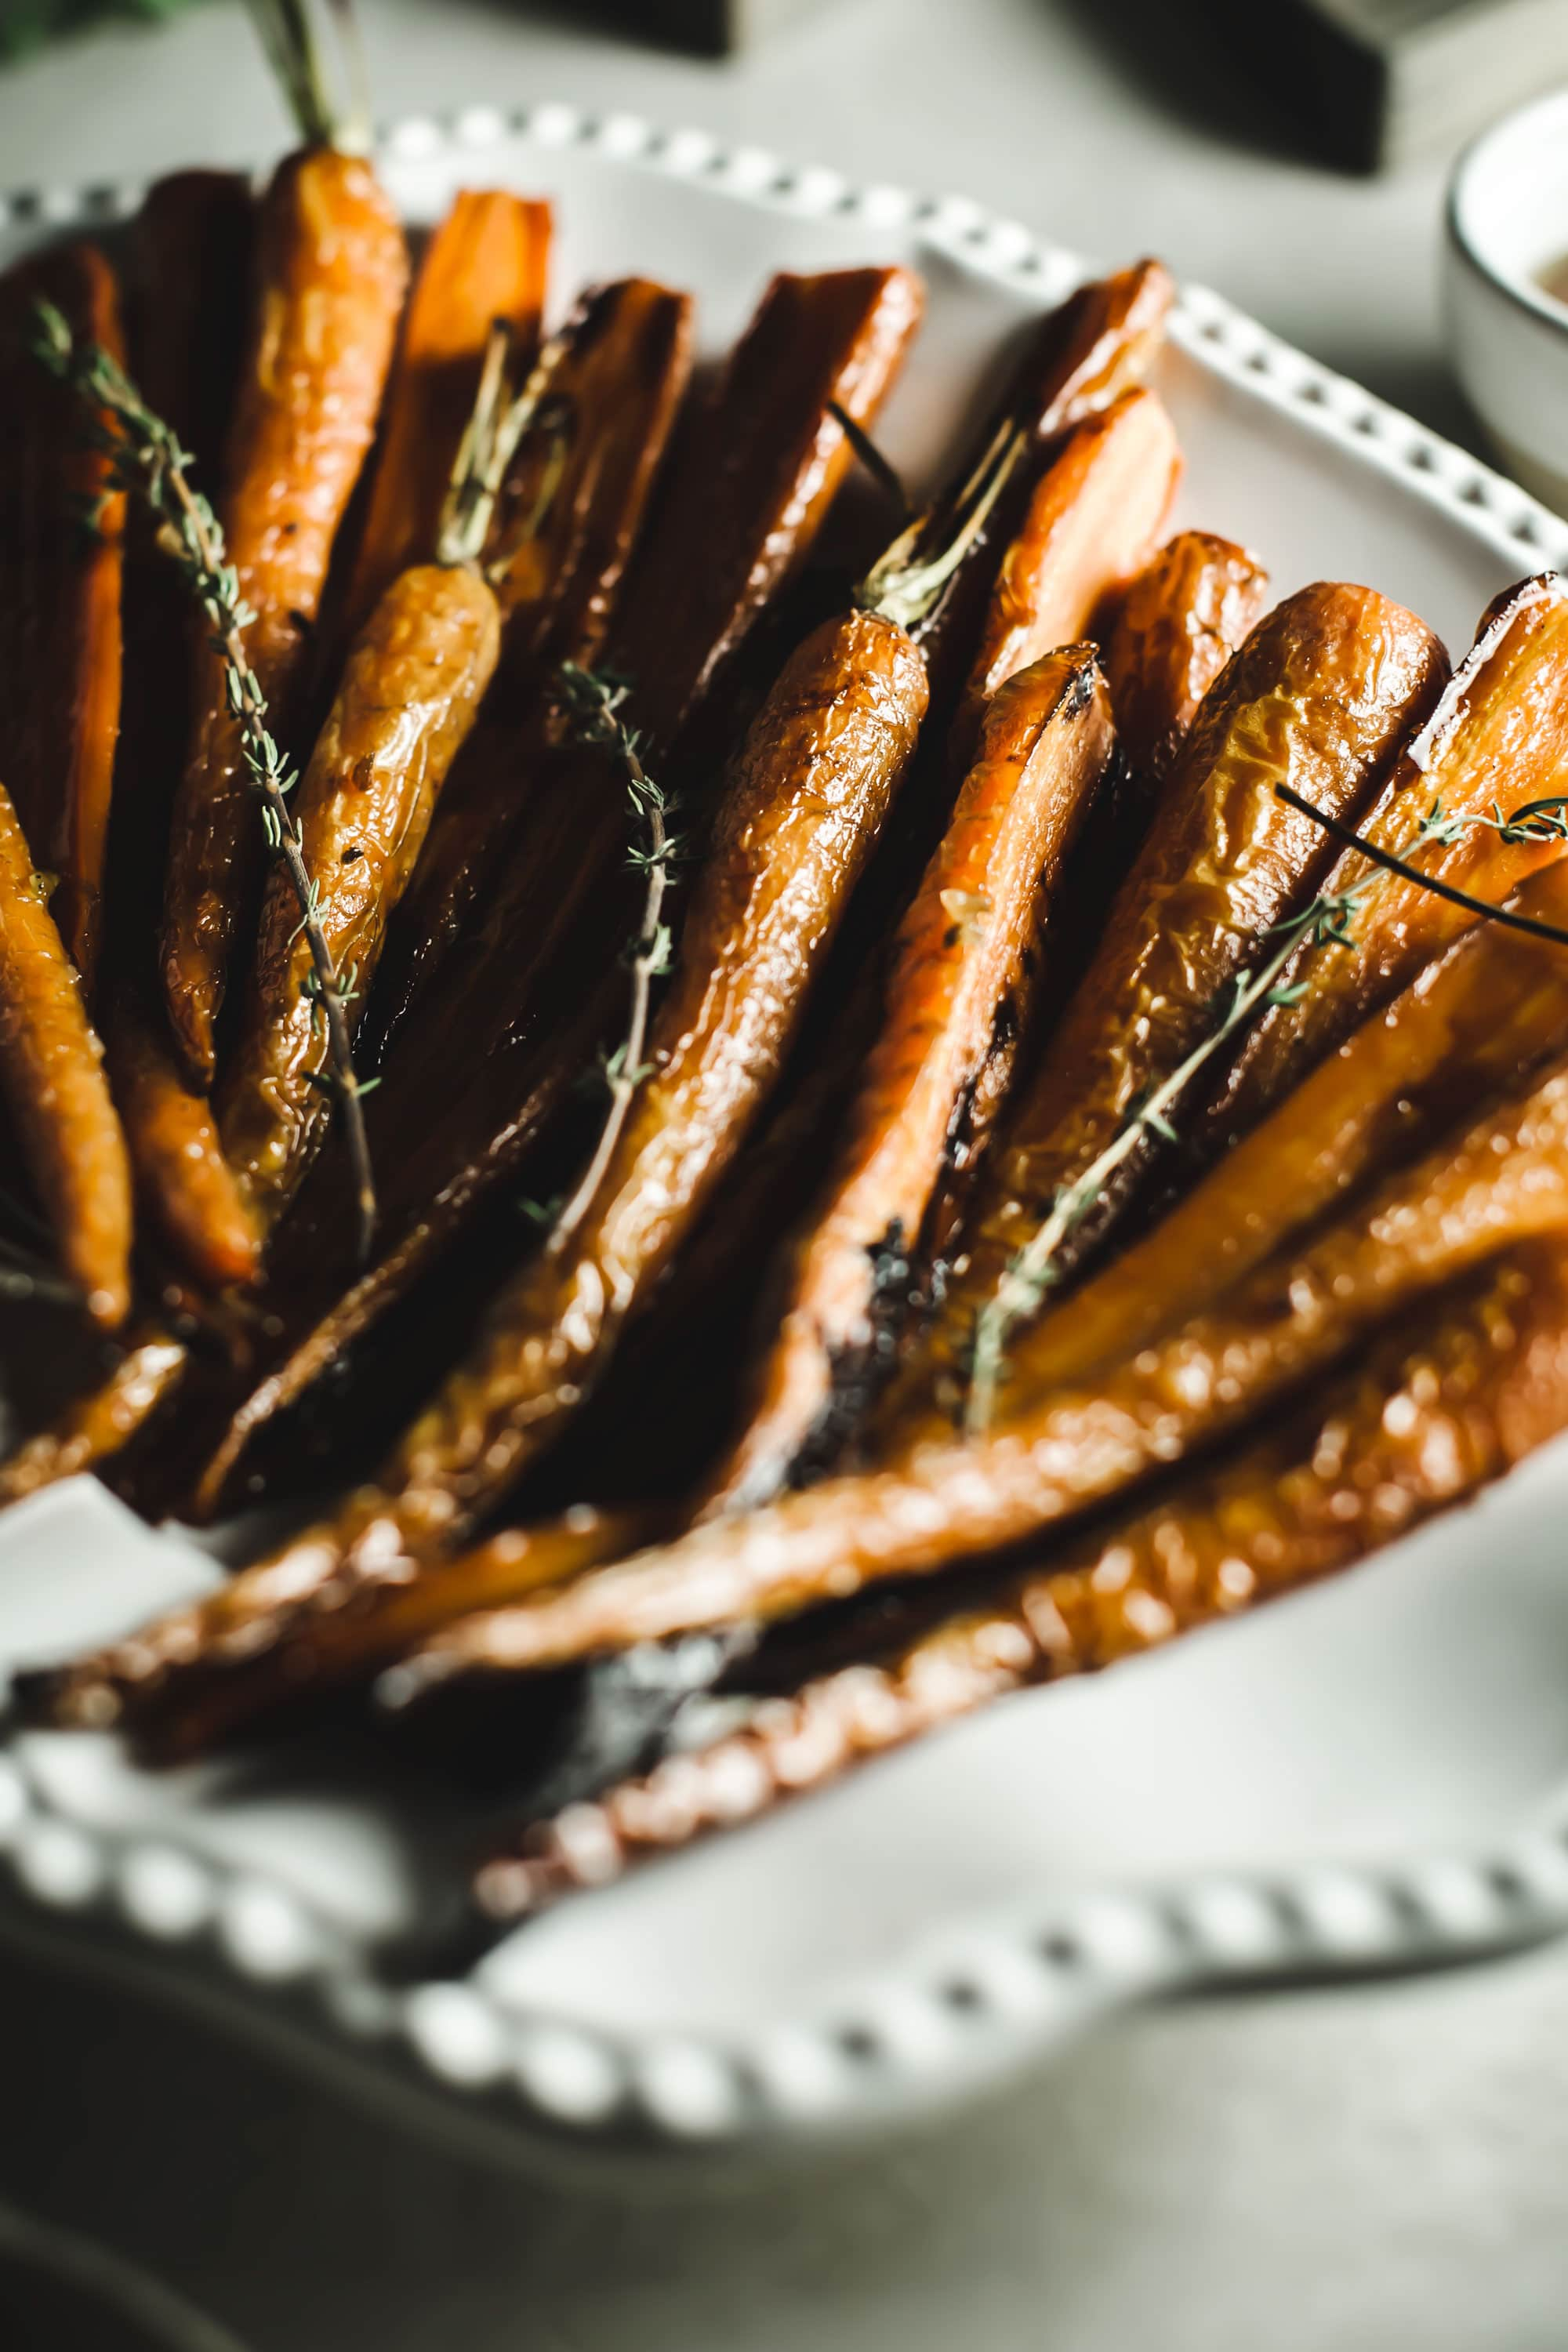 cooked and roasted carrots